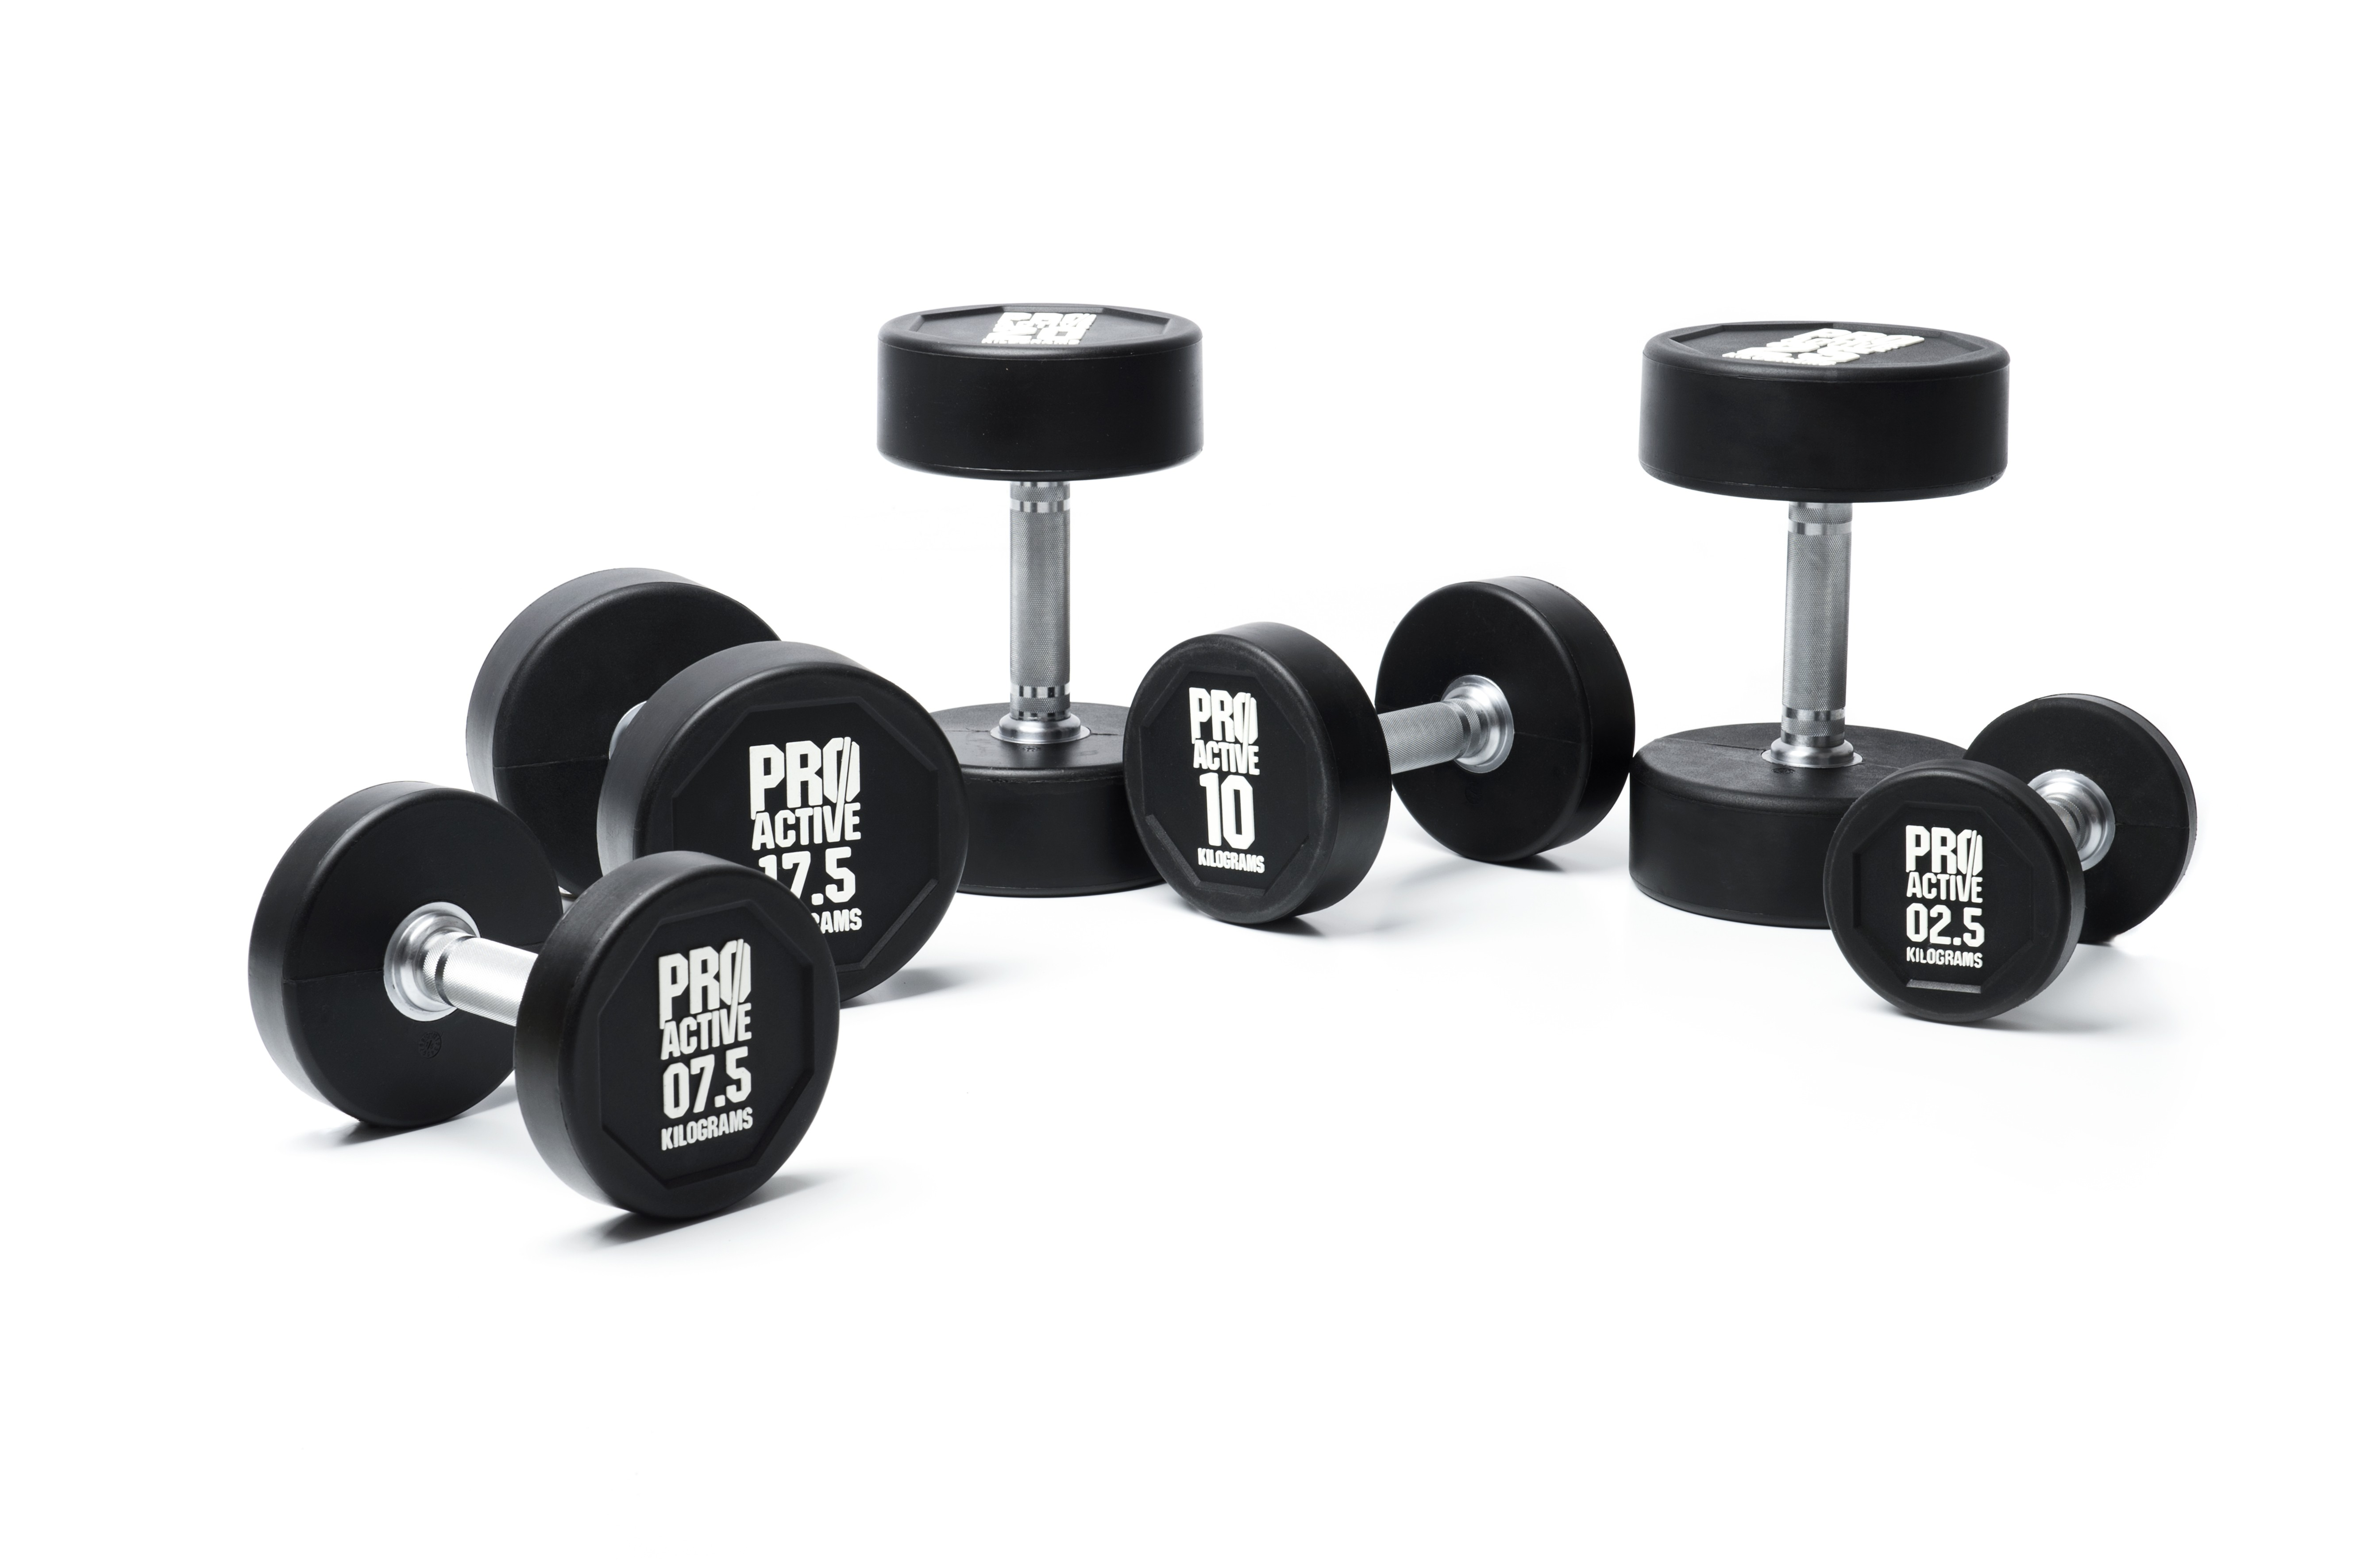 PROACTIVE Urethane Dumbbells (Available in 2.5kg - 50kg weights)